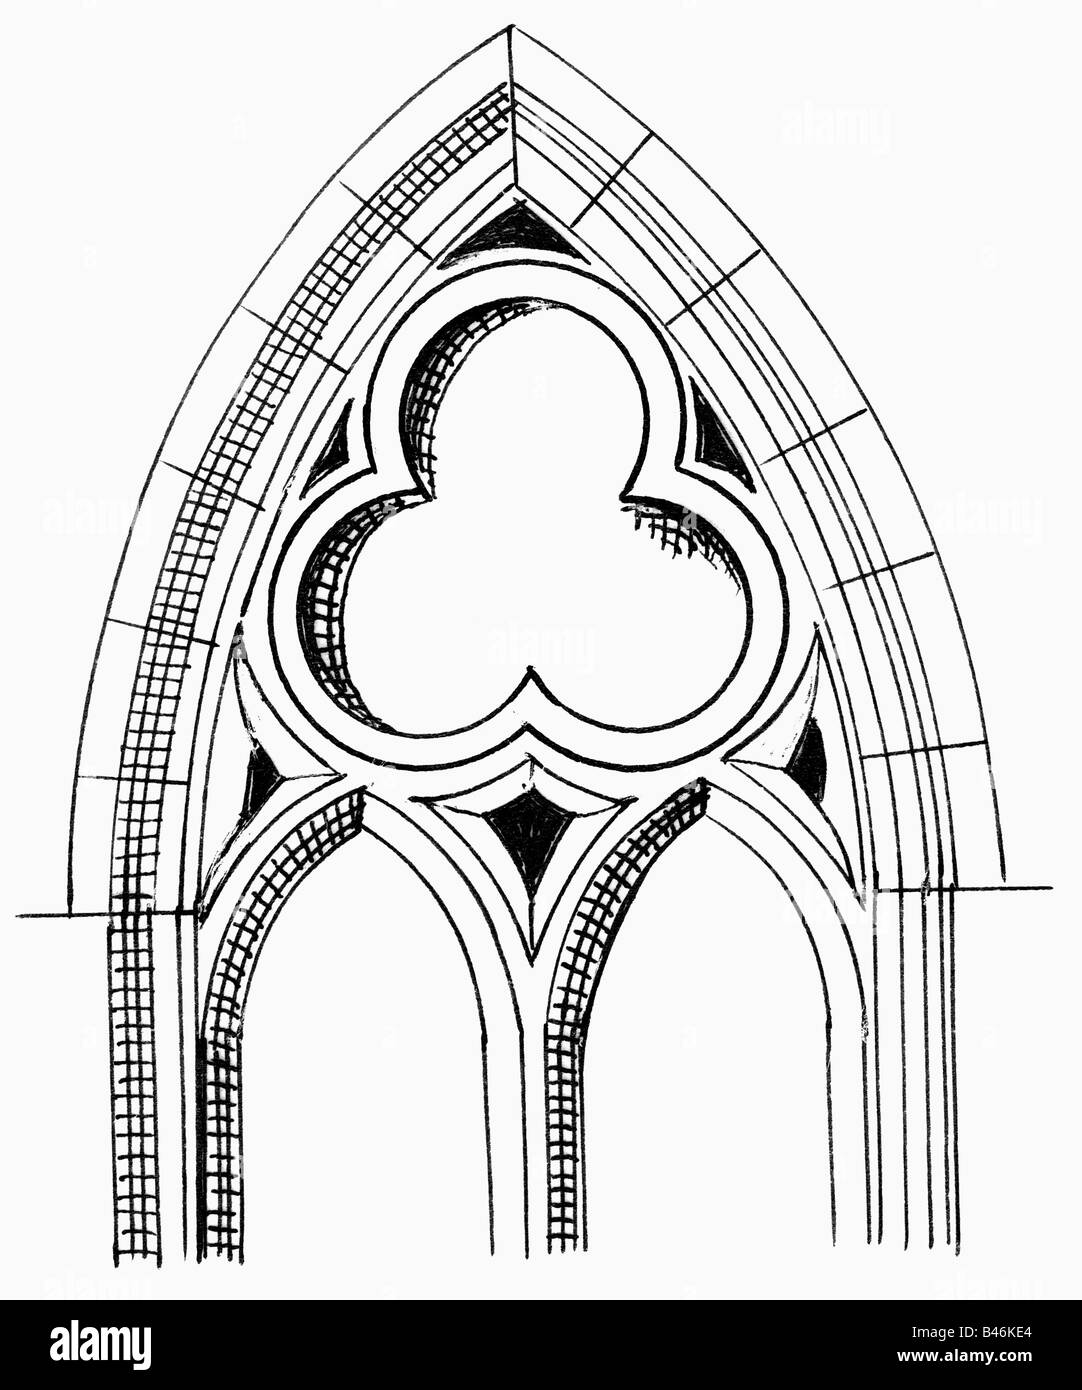 architecture houses detail Gothic window drawing middle ages historic historical  sc 1 st  Alamy & architecture houses detail Gothic window drawing middle ages ...